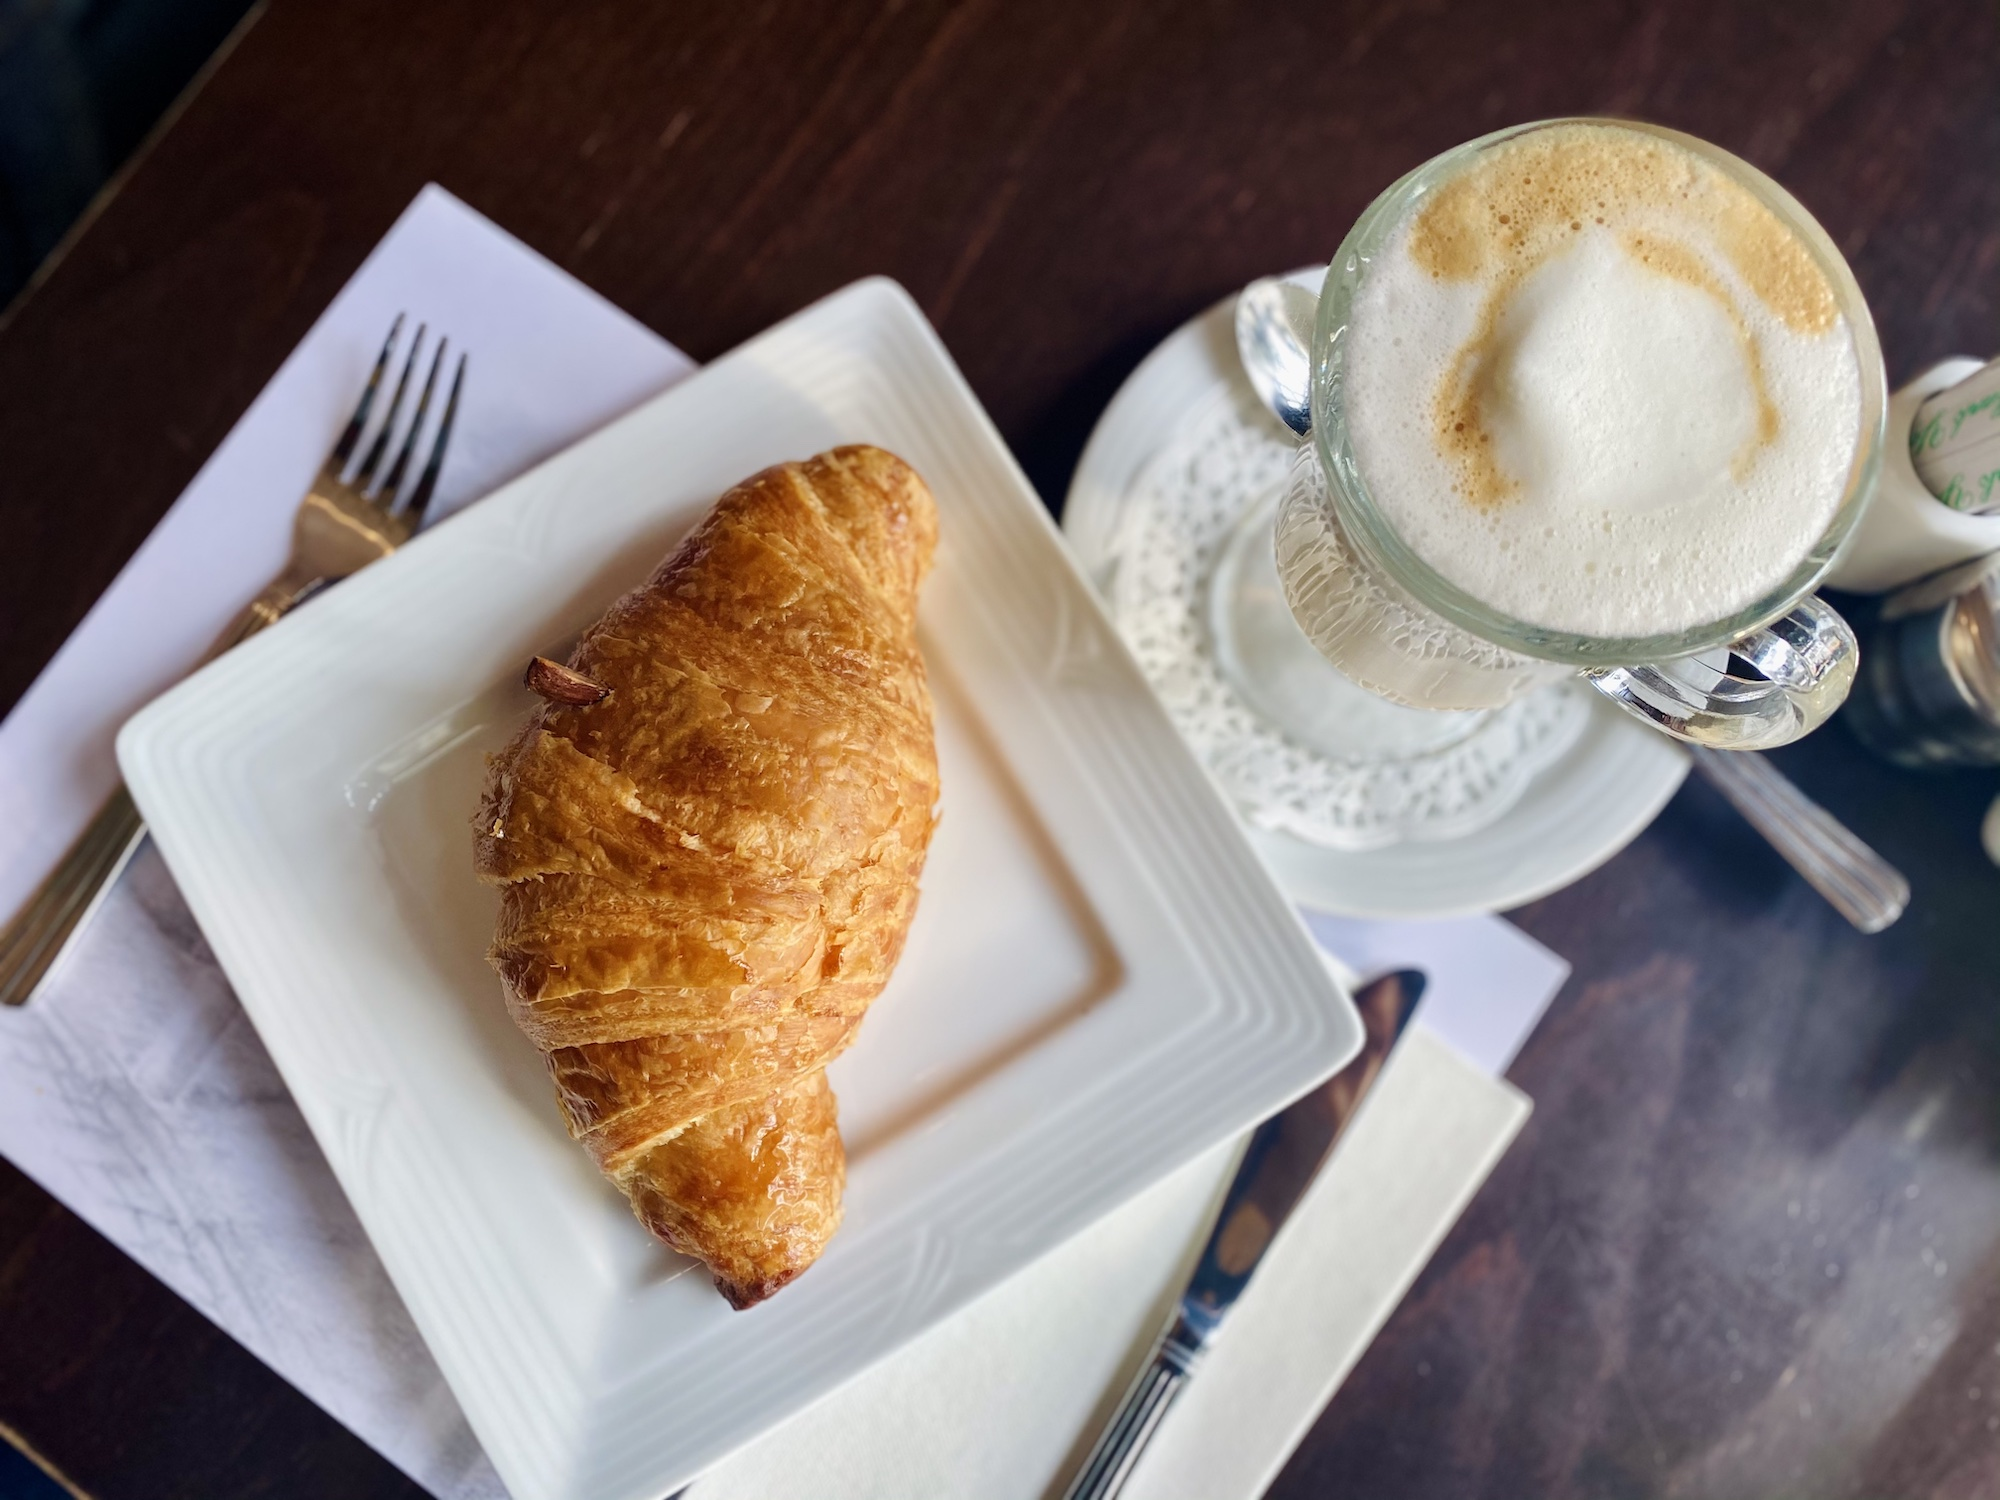 lord stow's garden cafe croissant